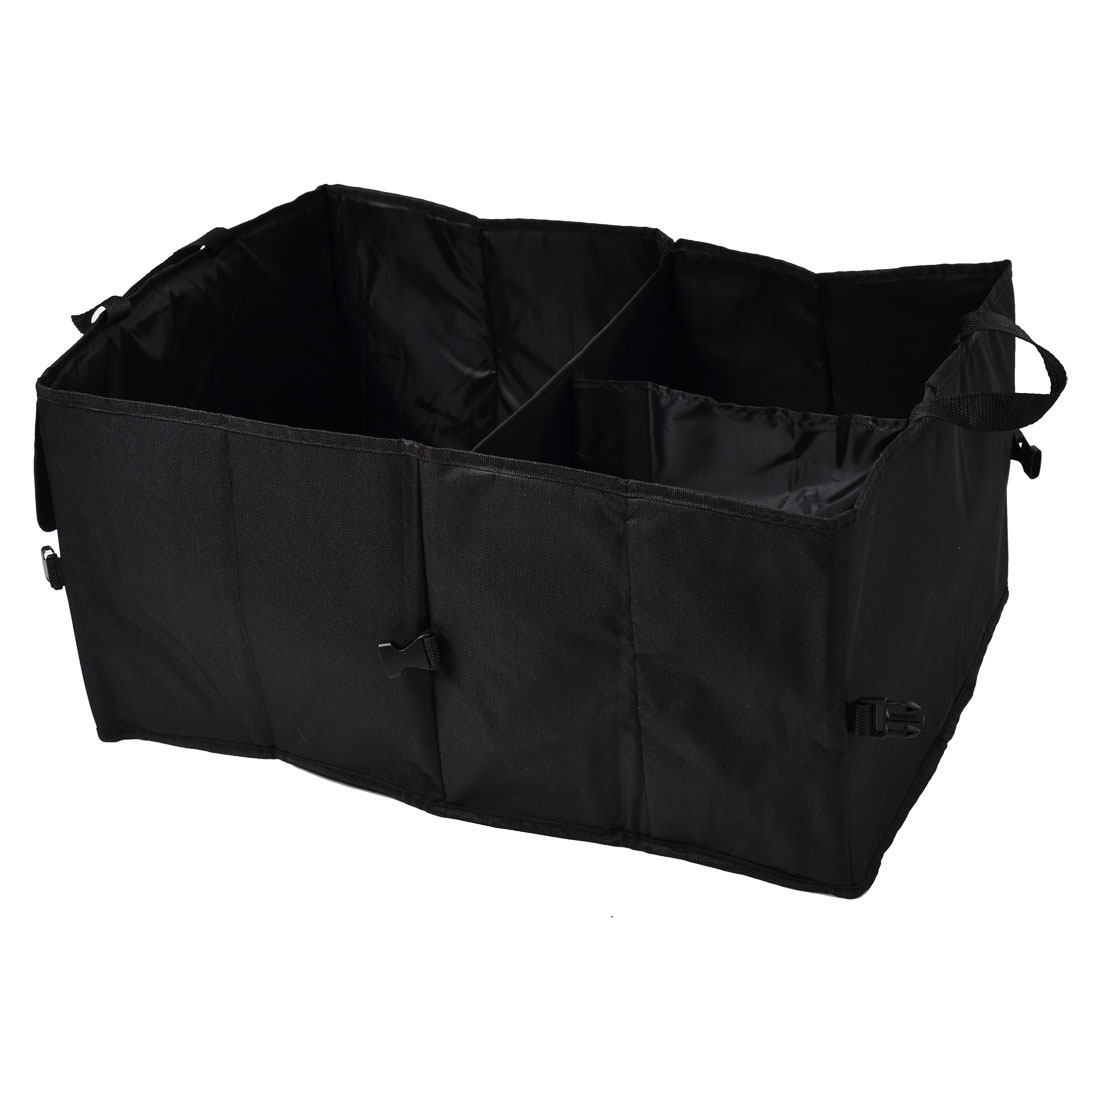 Black Car Boot Organiser Storage Bag Collapsible Foldable Pocket Tool Carrier